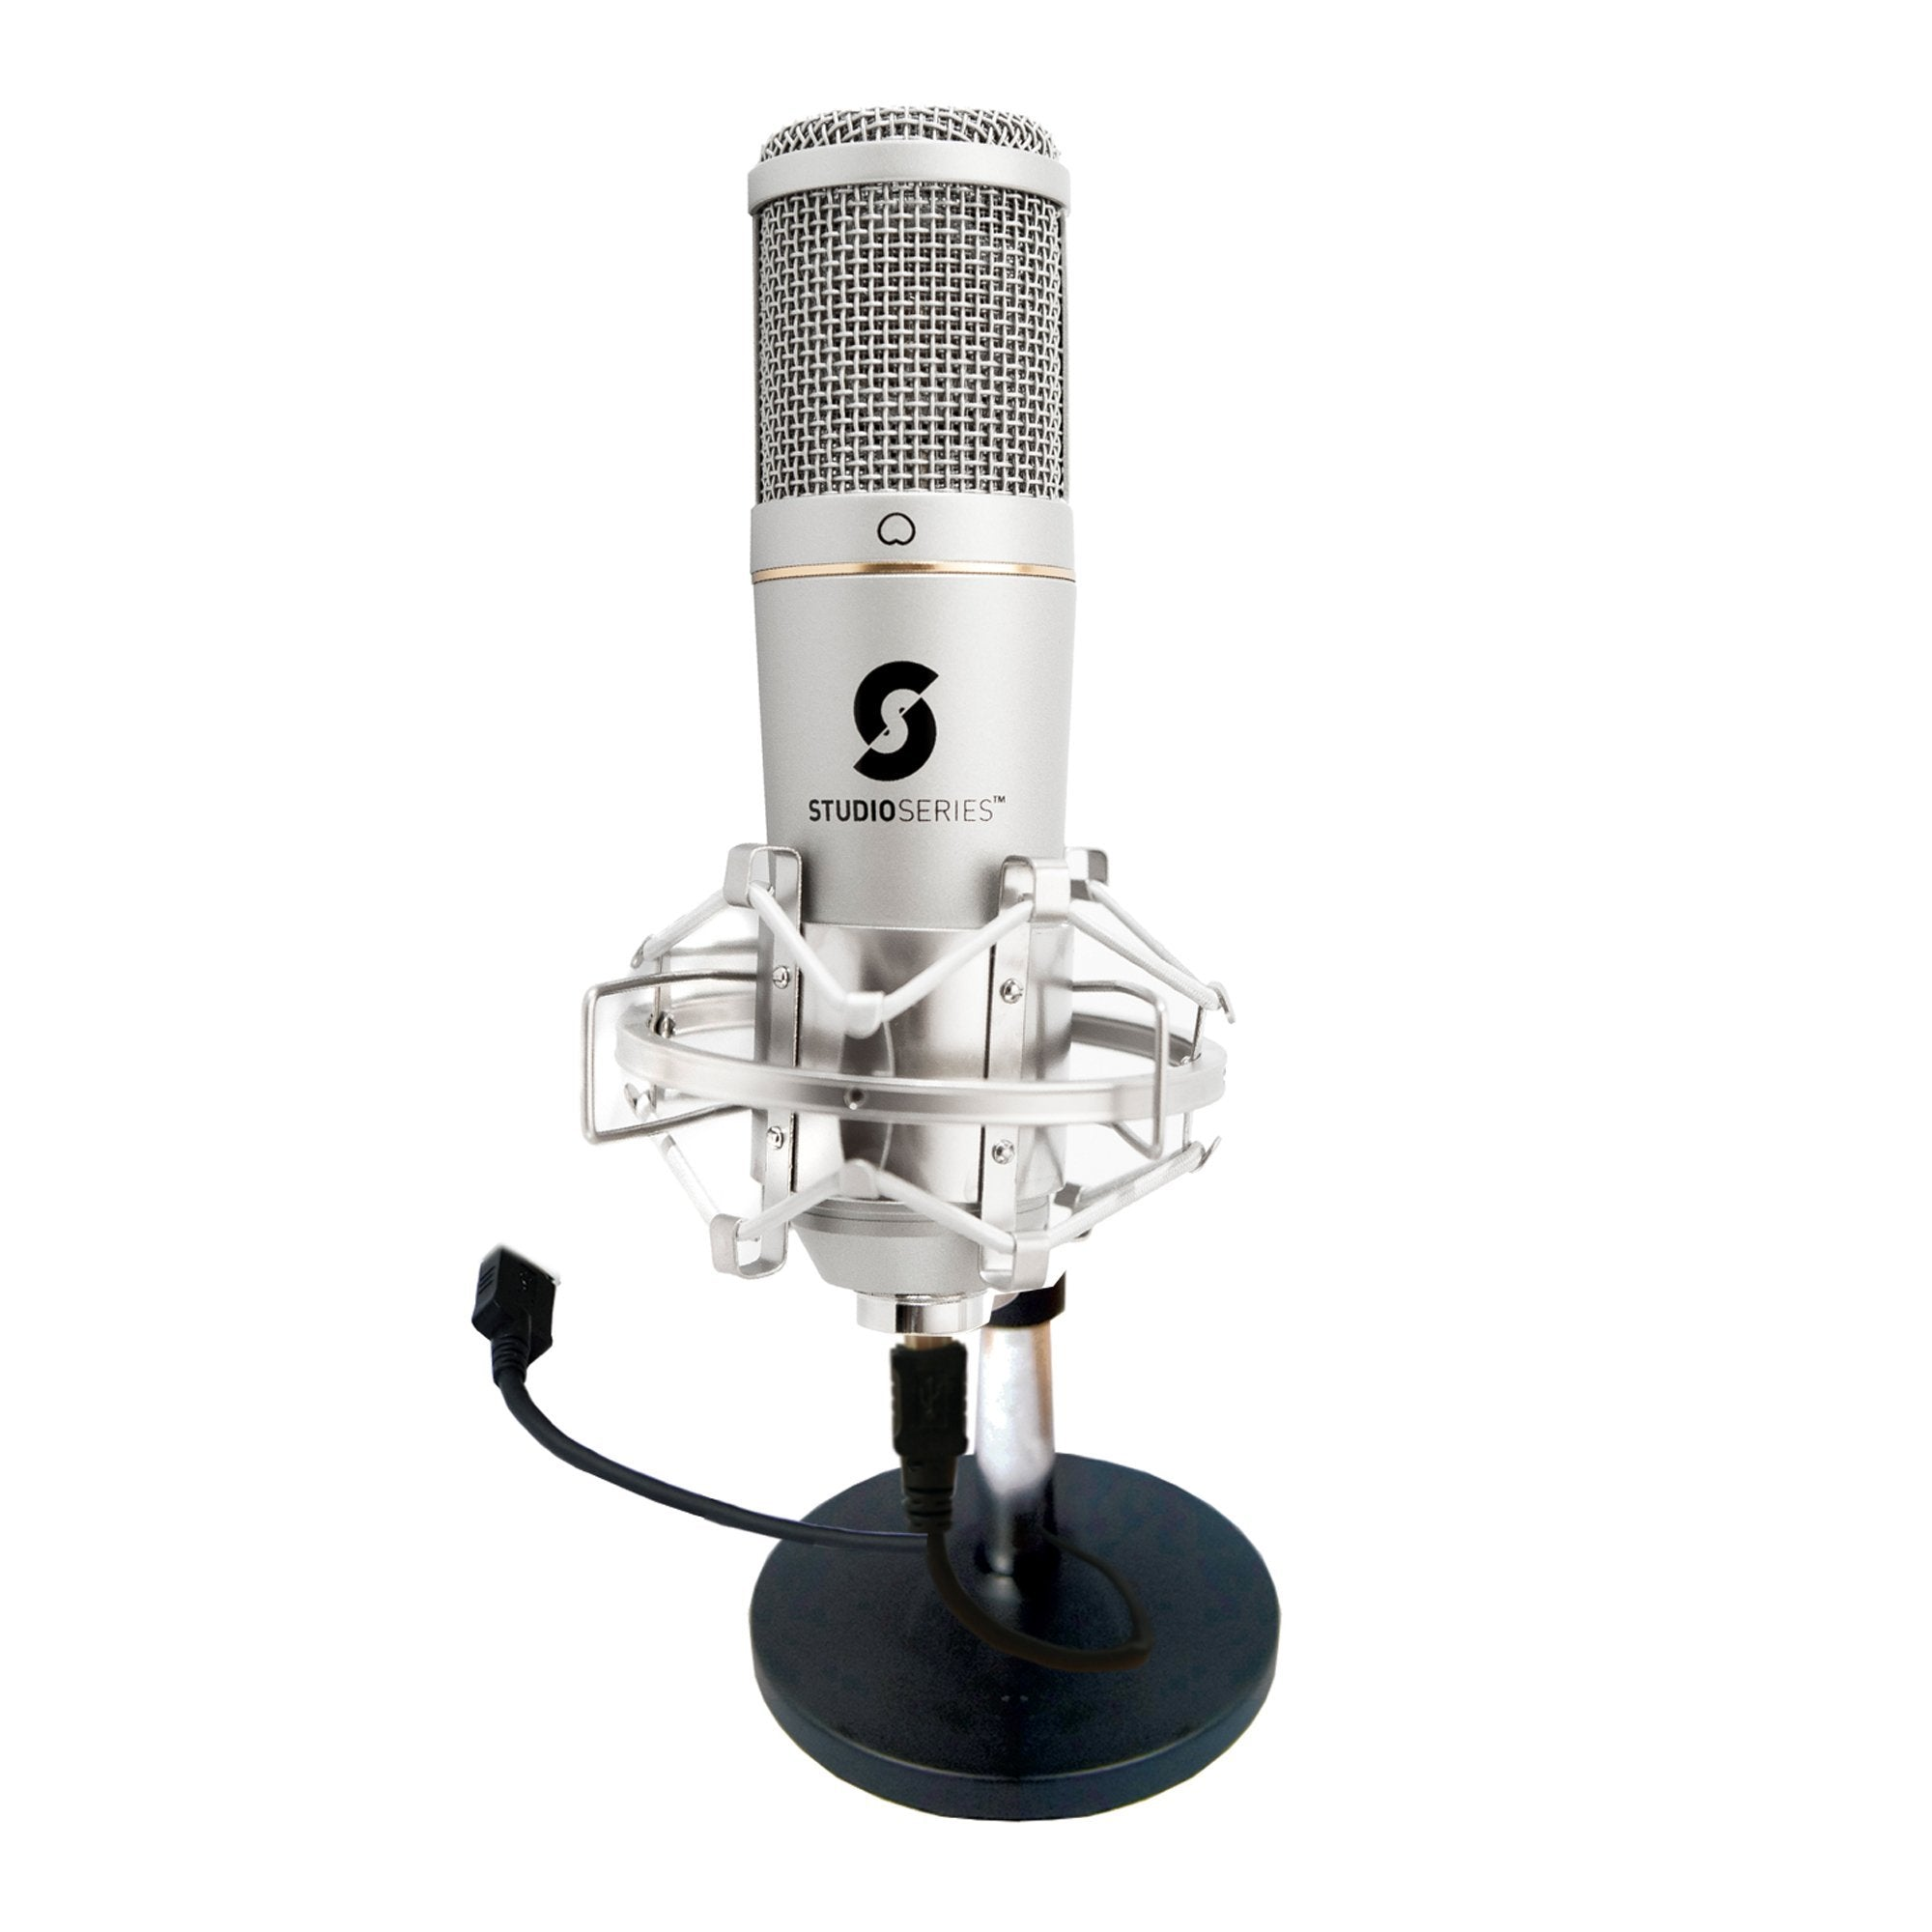 SL150 USB Gaming Microphone Bundle - Commentary Mic